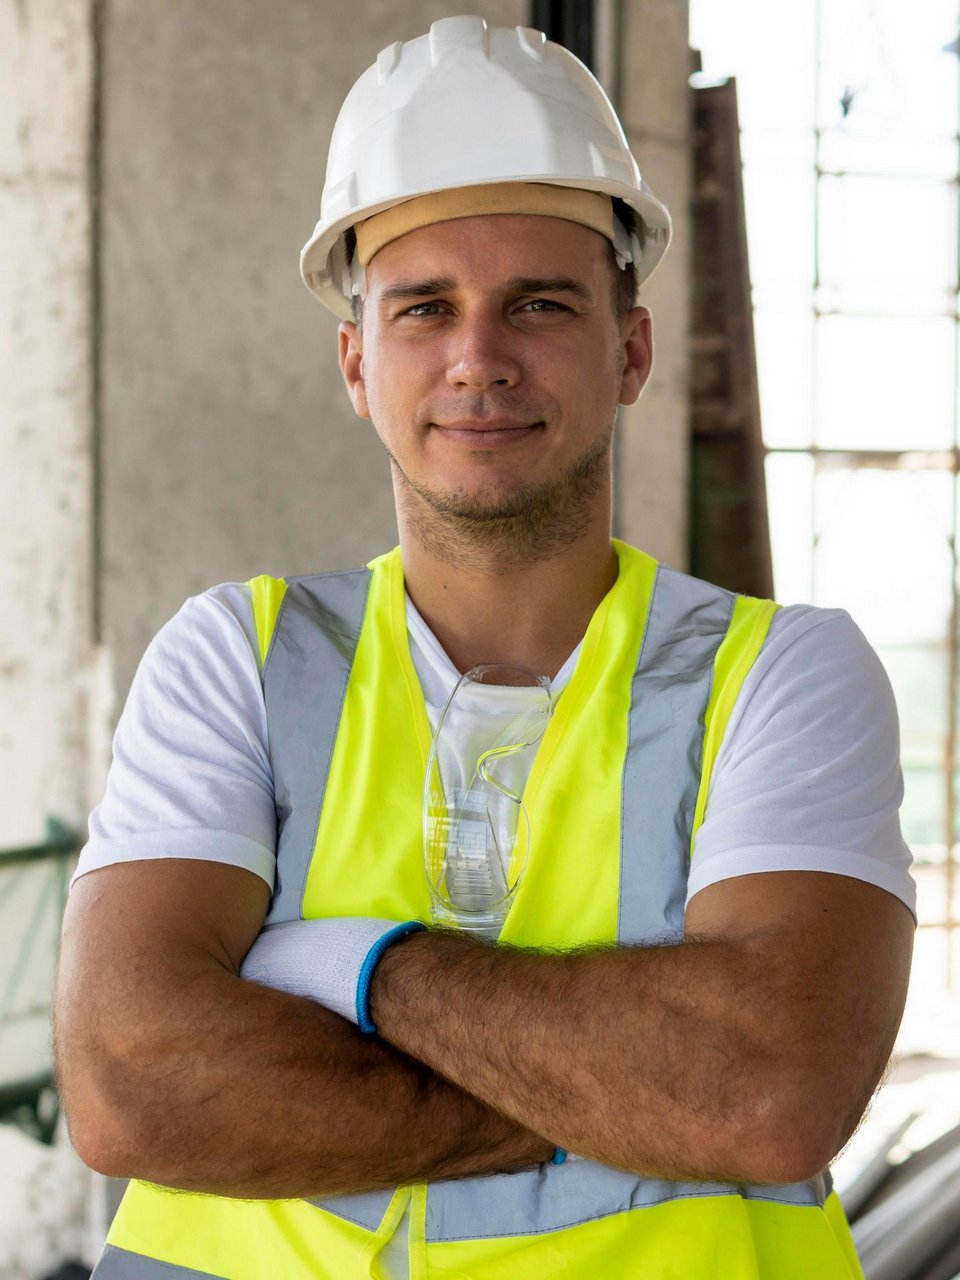 front-view-worker-construction-wearing-protection-gear